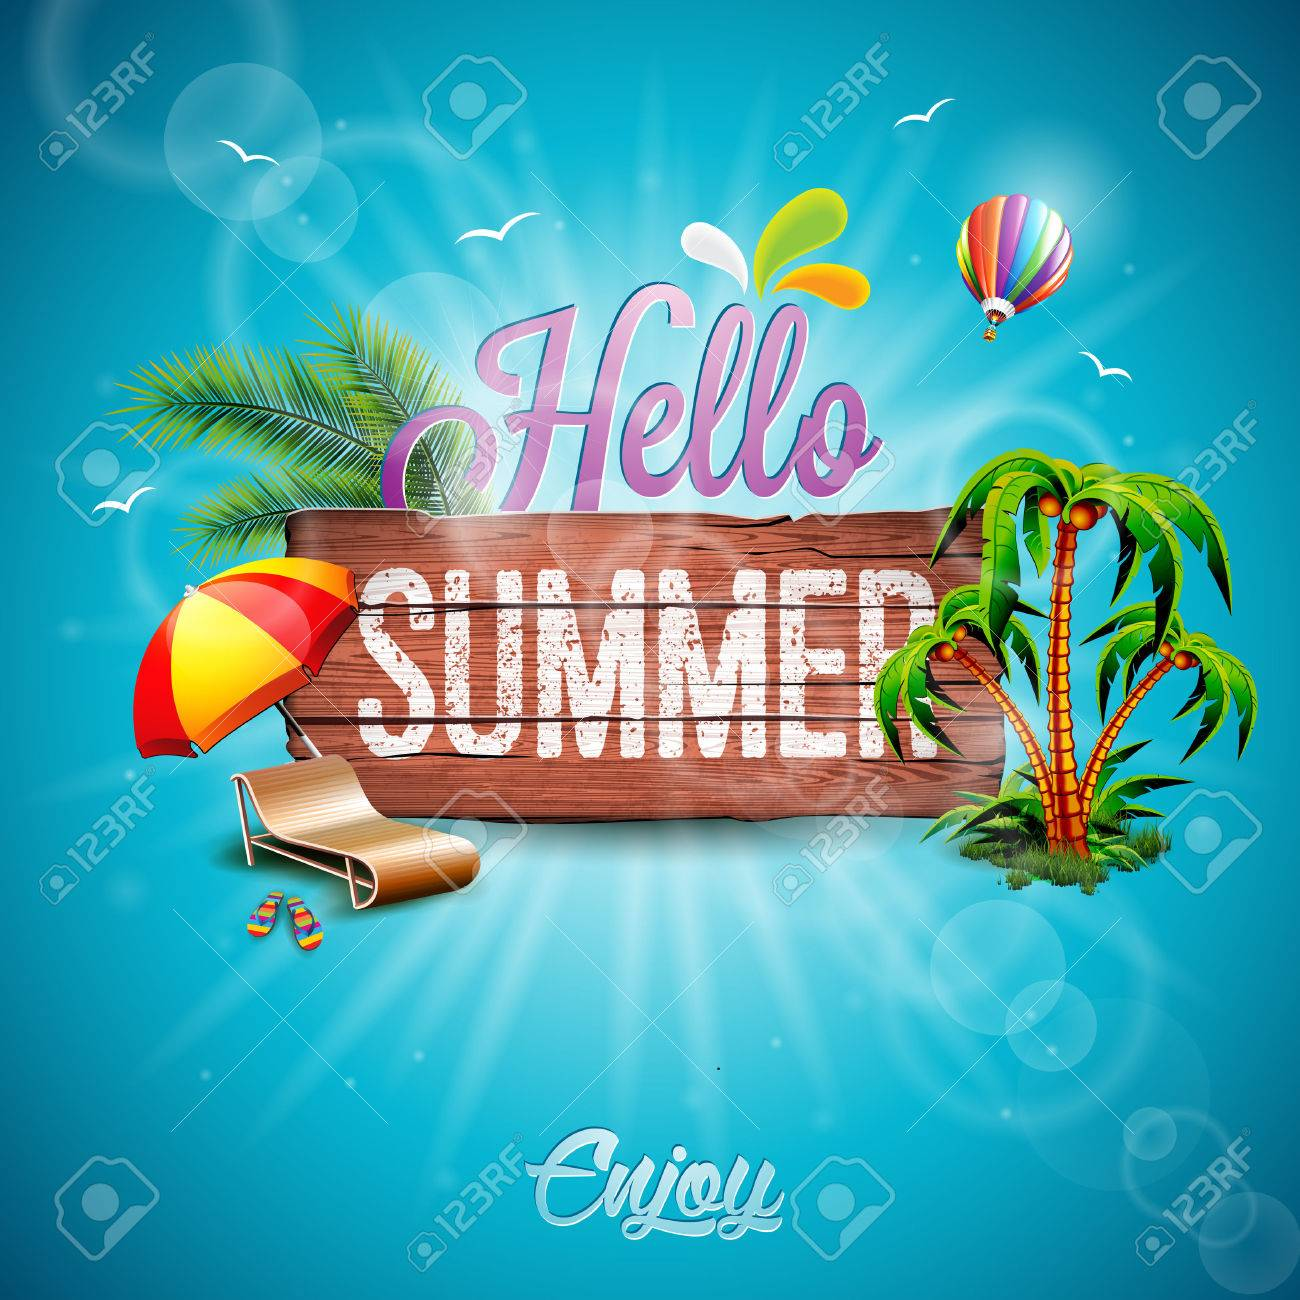 Hello Summer Holiday typographic illustration with tropical plants, flower and hot air balloon on vintage wood background. - 57961515